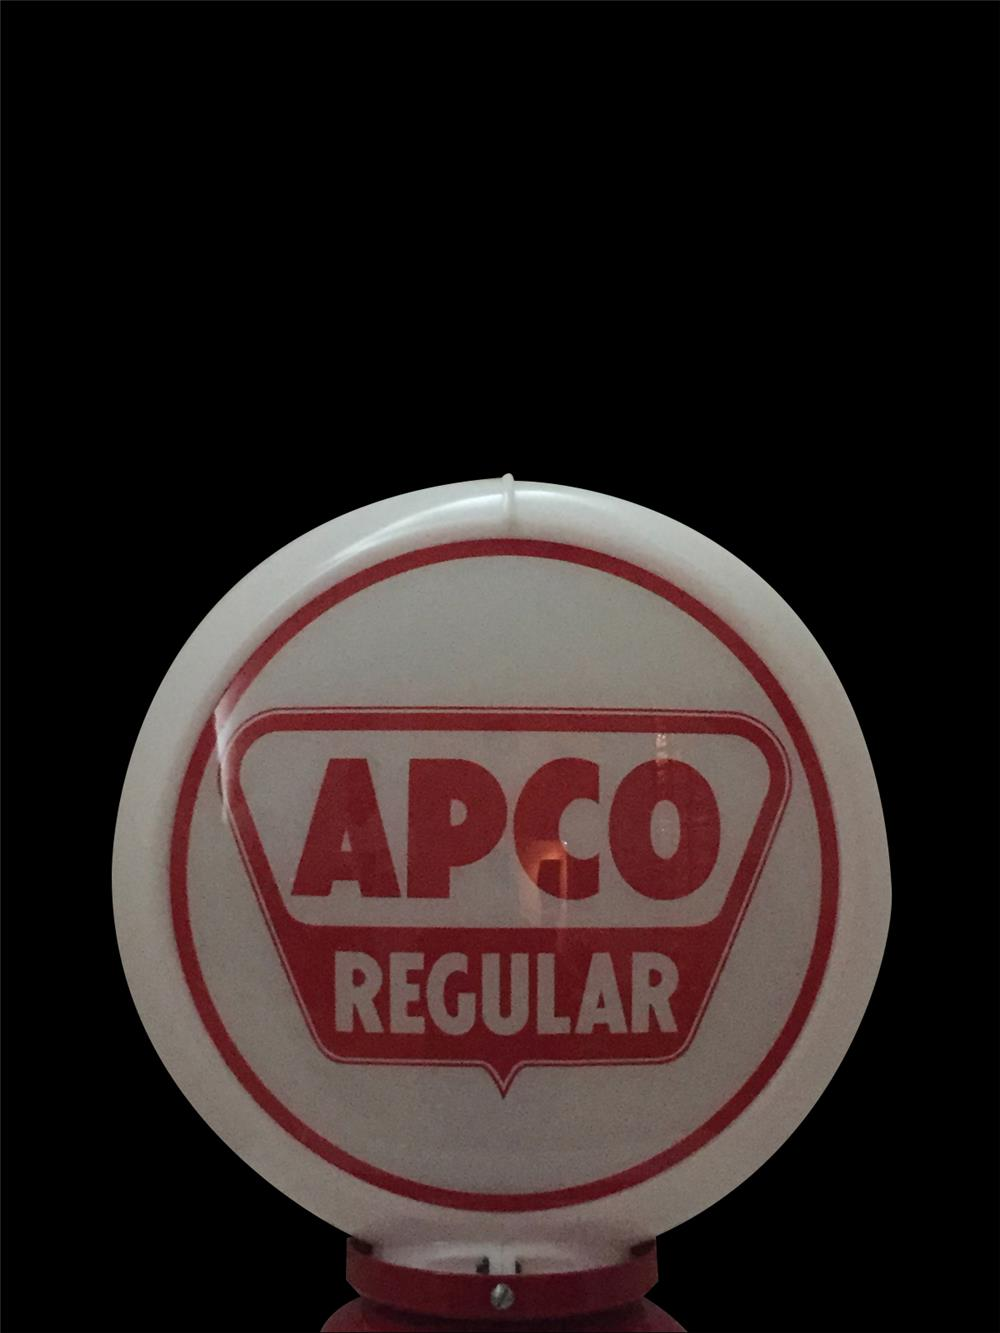 Late 1950s Apco Regular Gasoline gas pump globe in a Capcolite body. - Front 3/4 - 192352